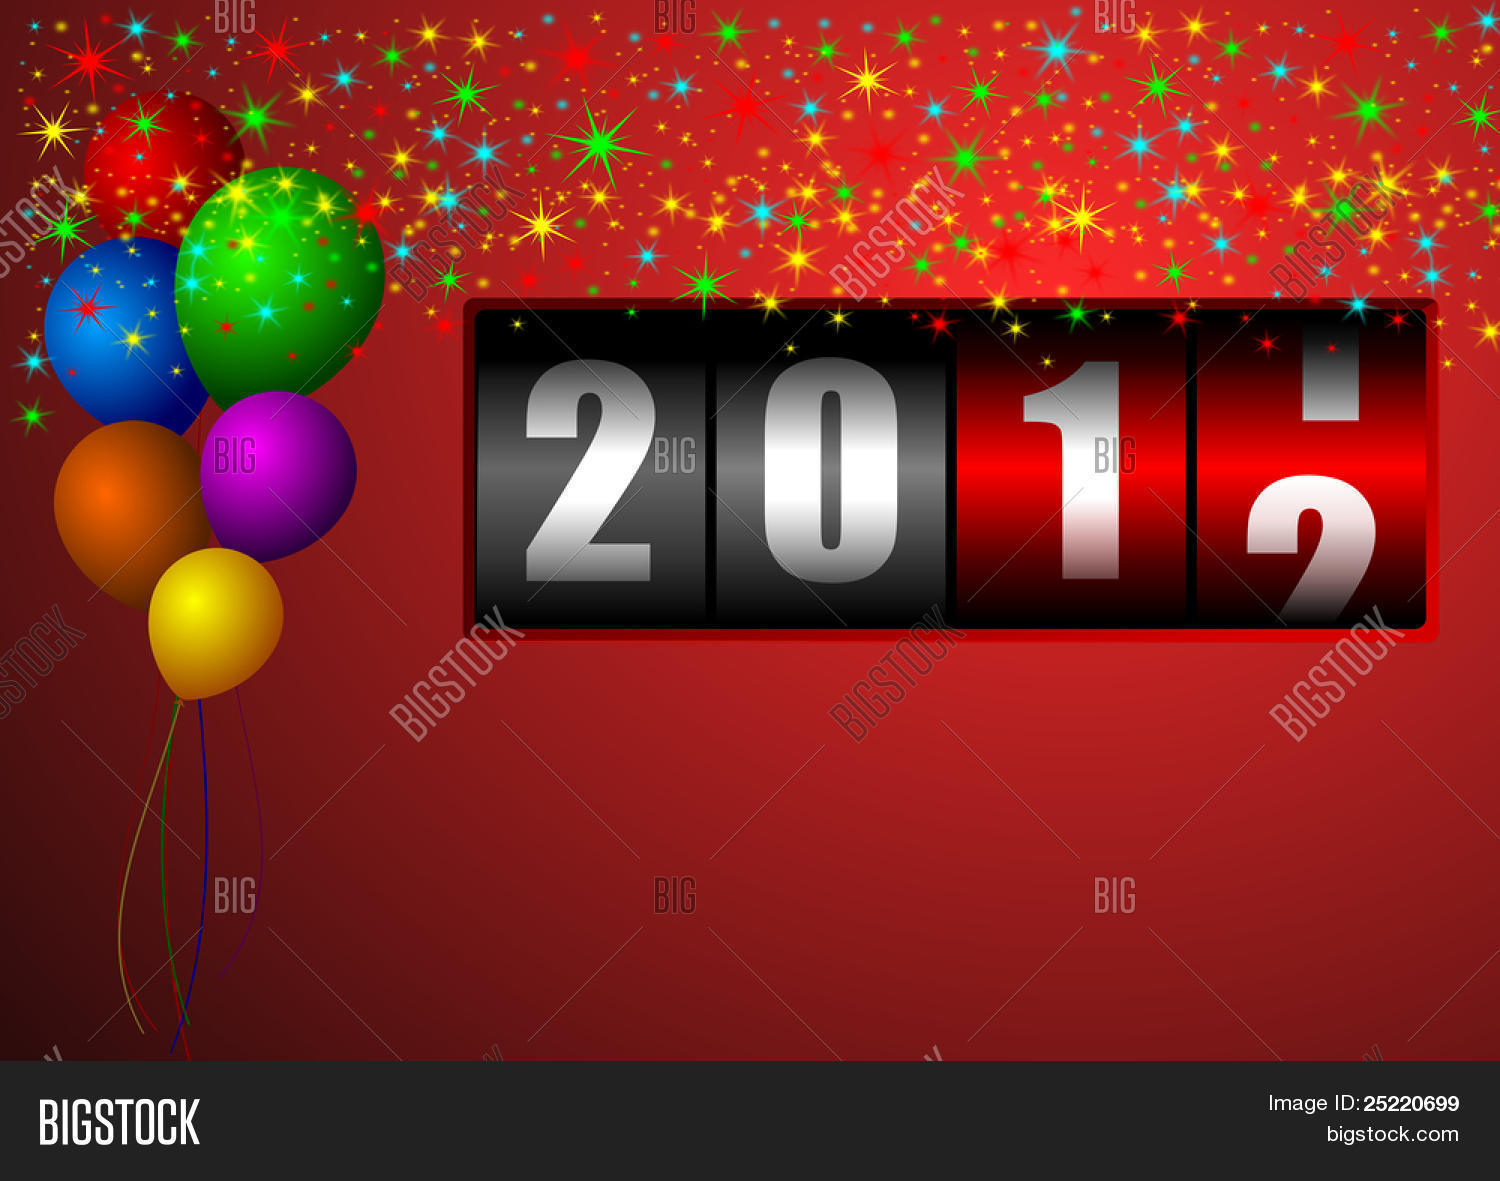 3d,2012,2012 calendar,2012 year,abstract,background,ball,ballon,black,calendar,card,celebrate,celebrating,celebration,christmas,coundown,count,counter,date,date night,eve,fiesta,graphic,green,greeting card,greetings,happy,happy new year,illustration,invitation,new,new year,newyear,new year's eve,new year background,new year celebration,new year party,new years,new years eve,new years eve party,next year,night,noel,number,party,red,silvester,star,start,sylvester,time,turn of the year,wish,xmas,year